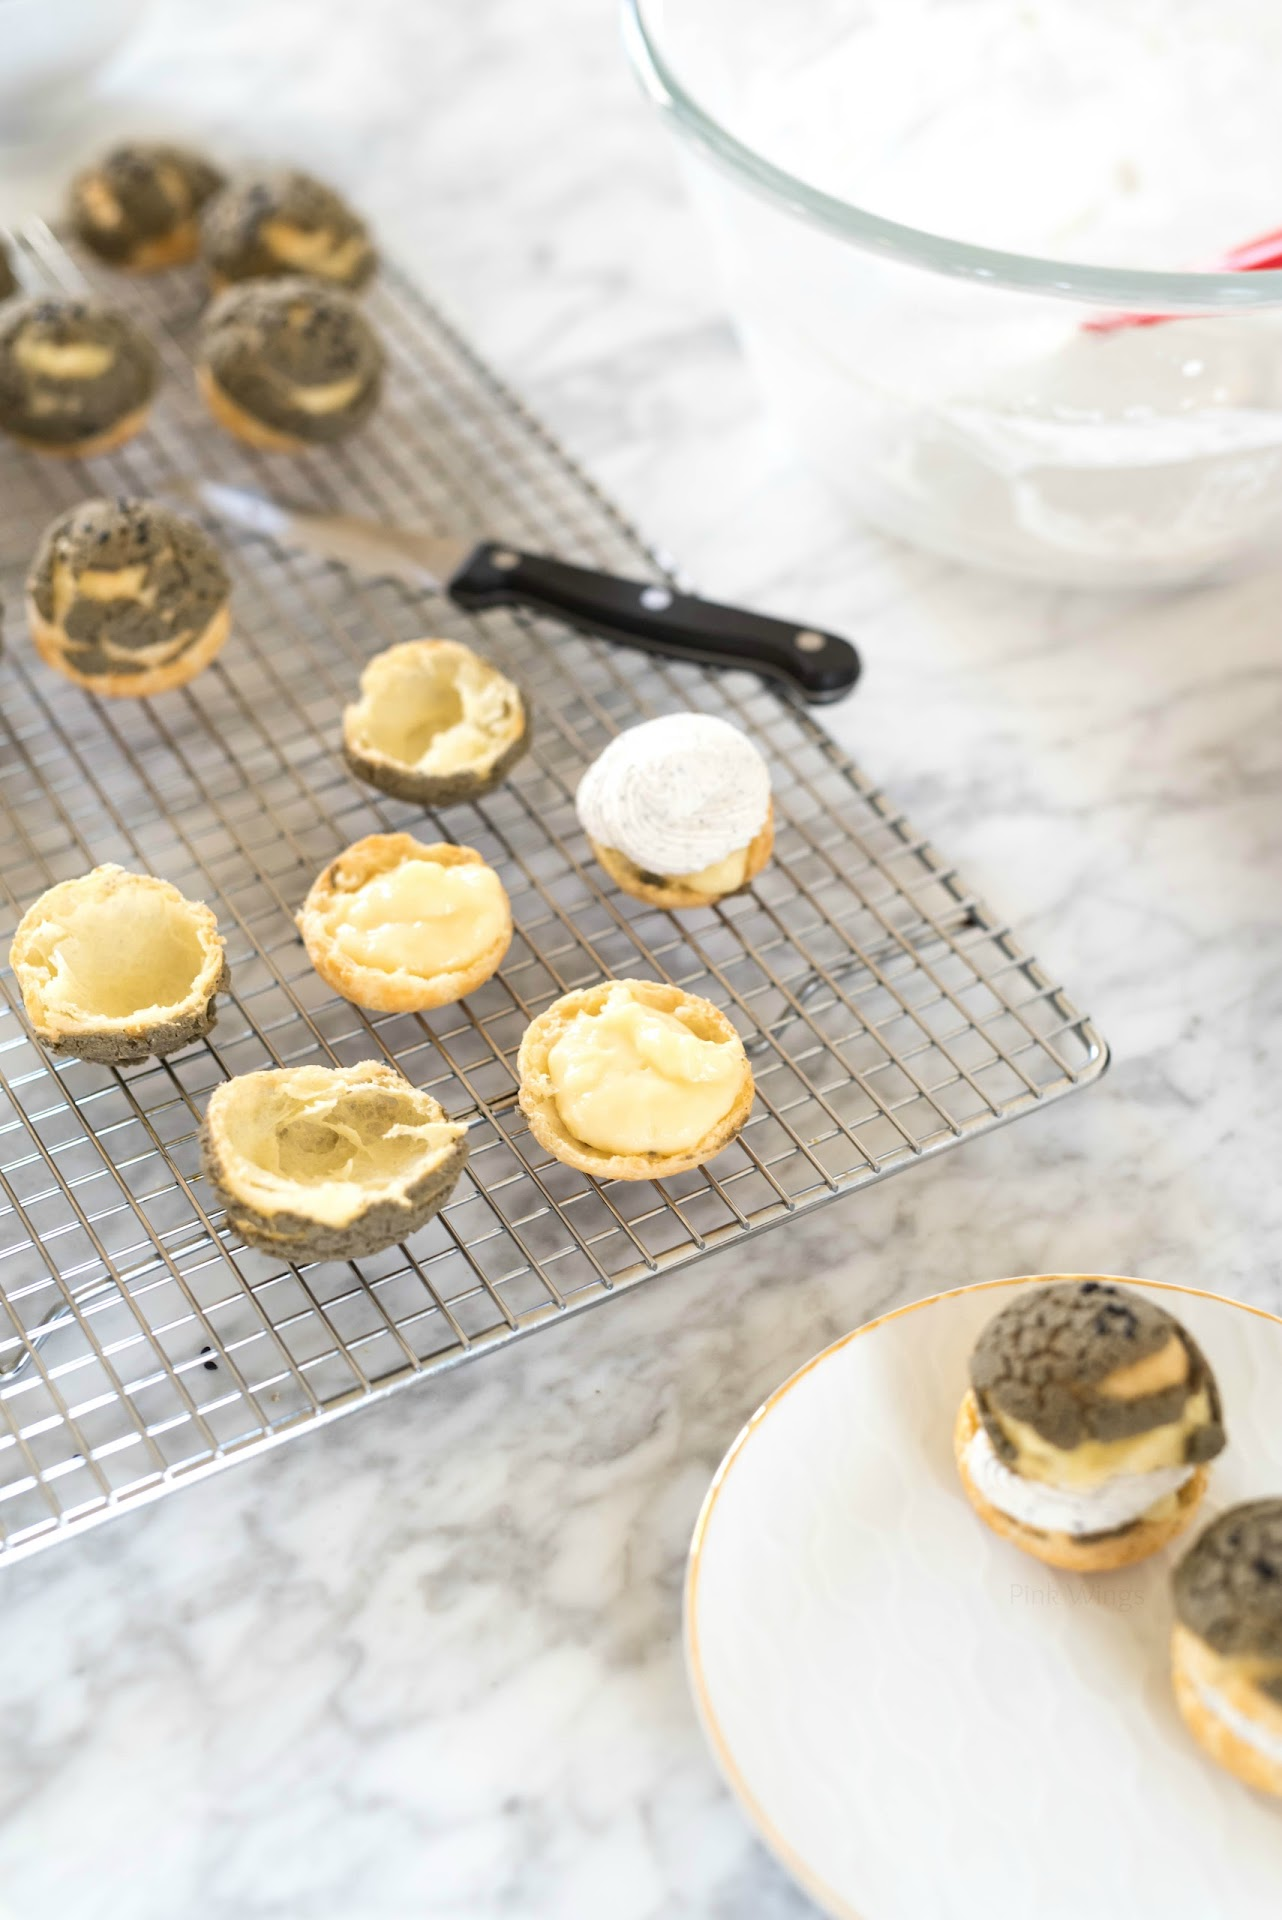 cream puff recipe, profiteroles, how to make cream puffs, fool-proof, easy, pastry cream, asian food blogger, san francisco bay area